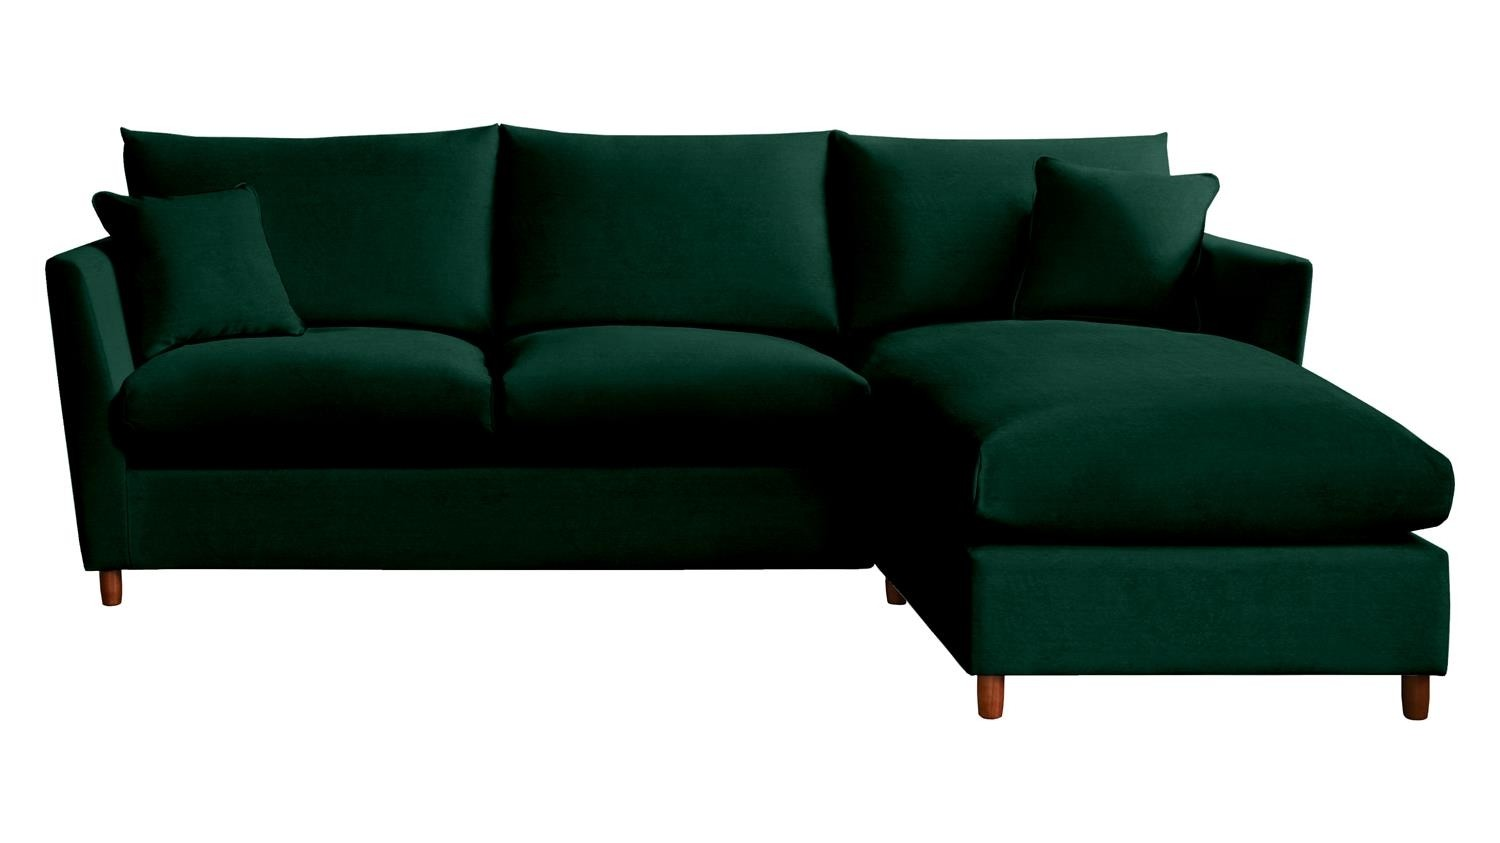 The Ansty 4 Seater Chaise Sofa Bed